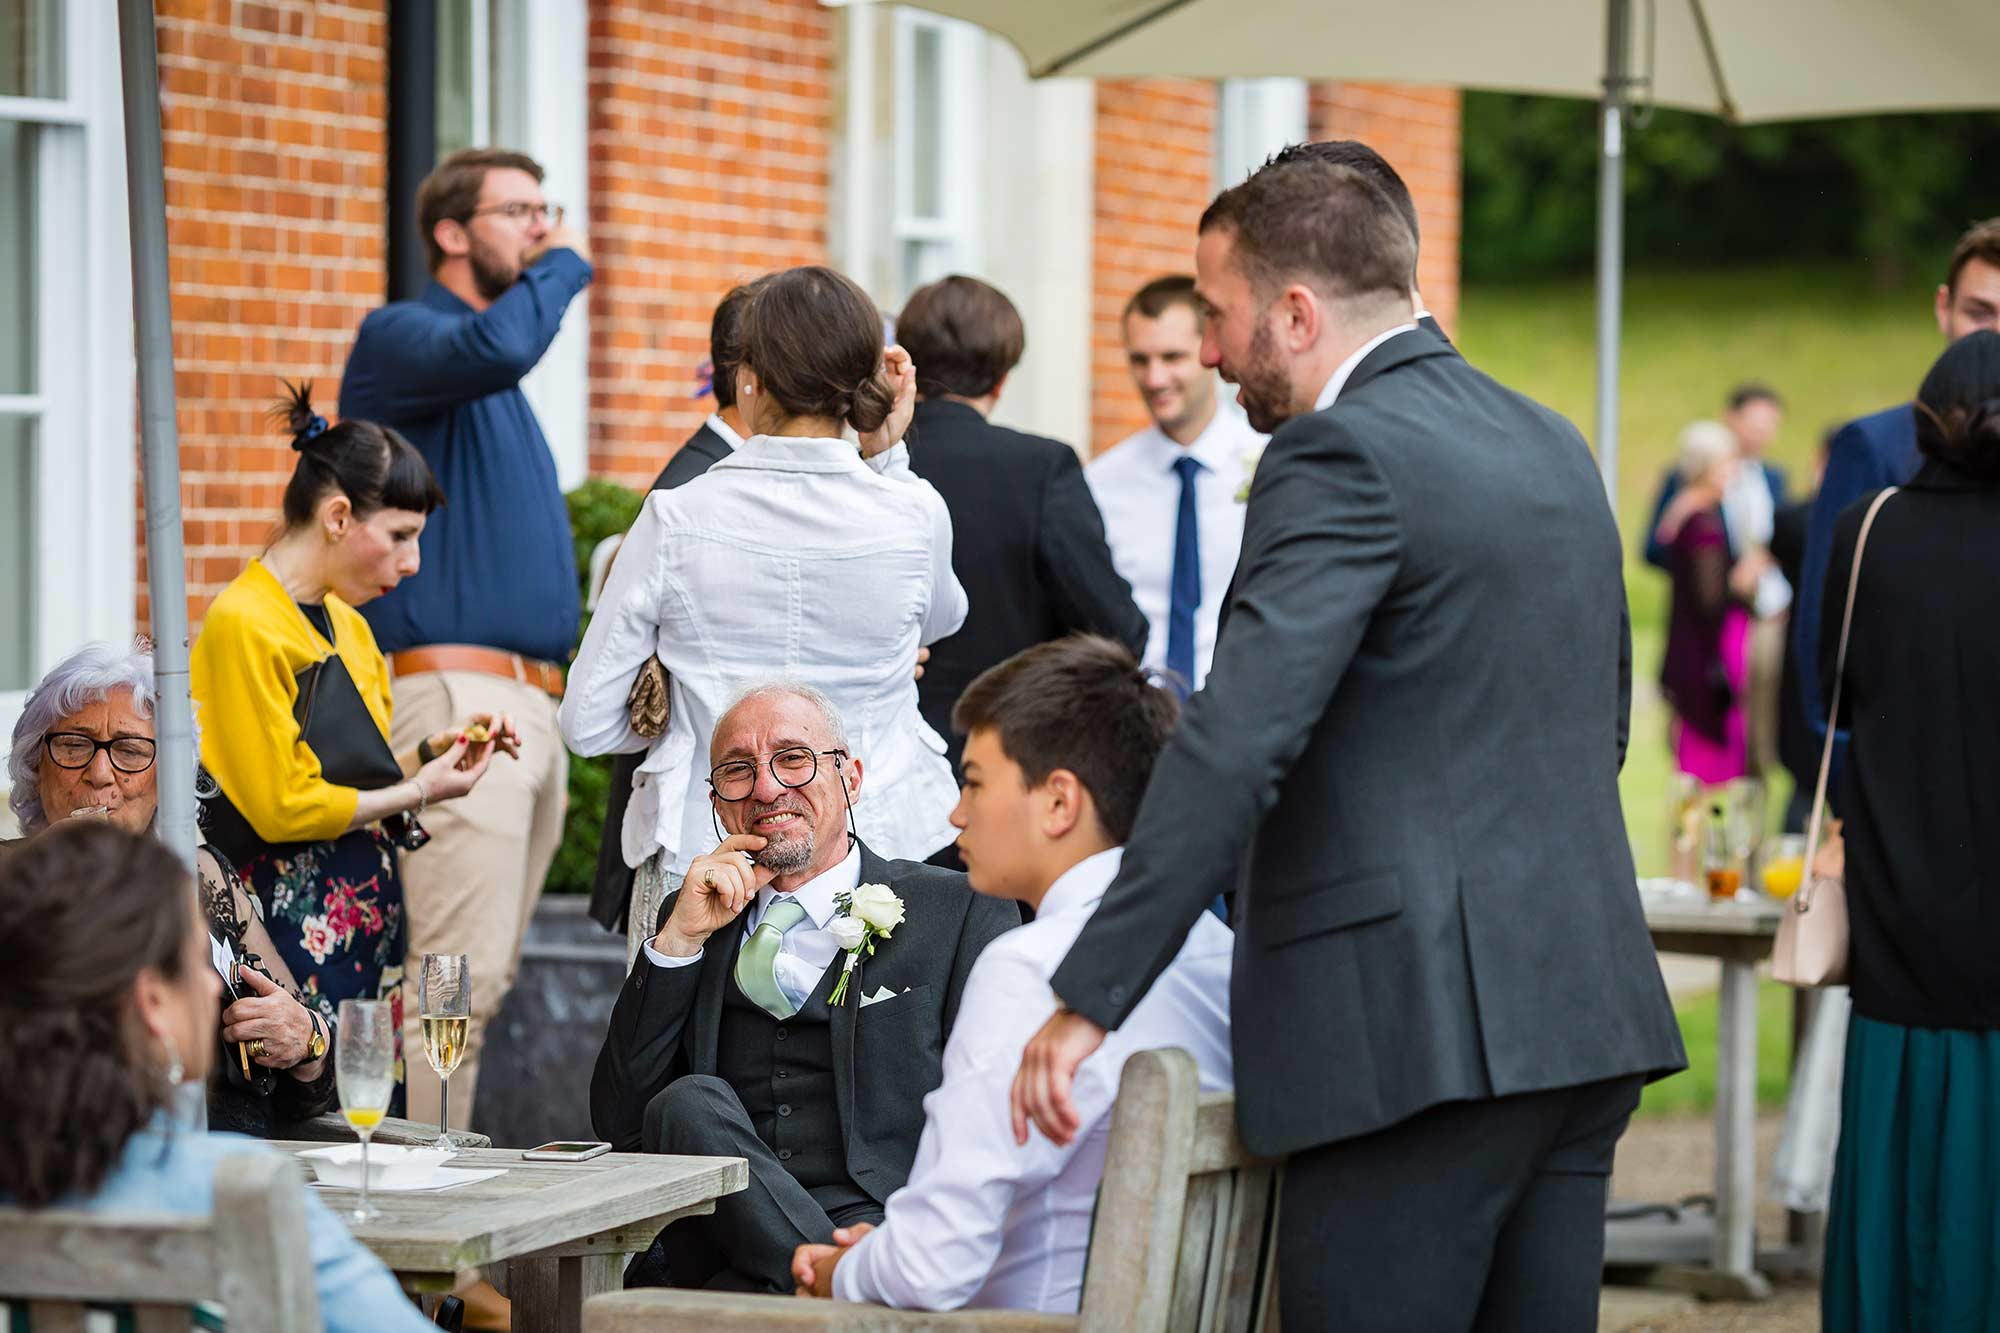 Grooms Dad chatting to his family